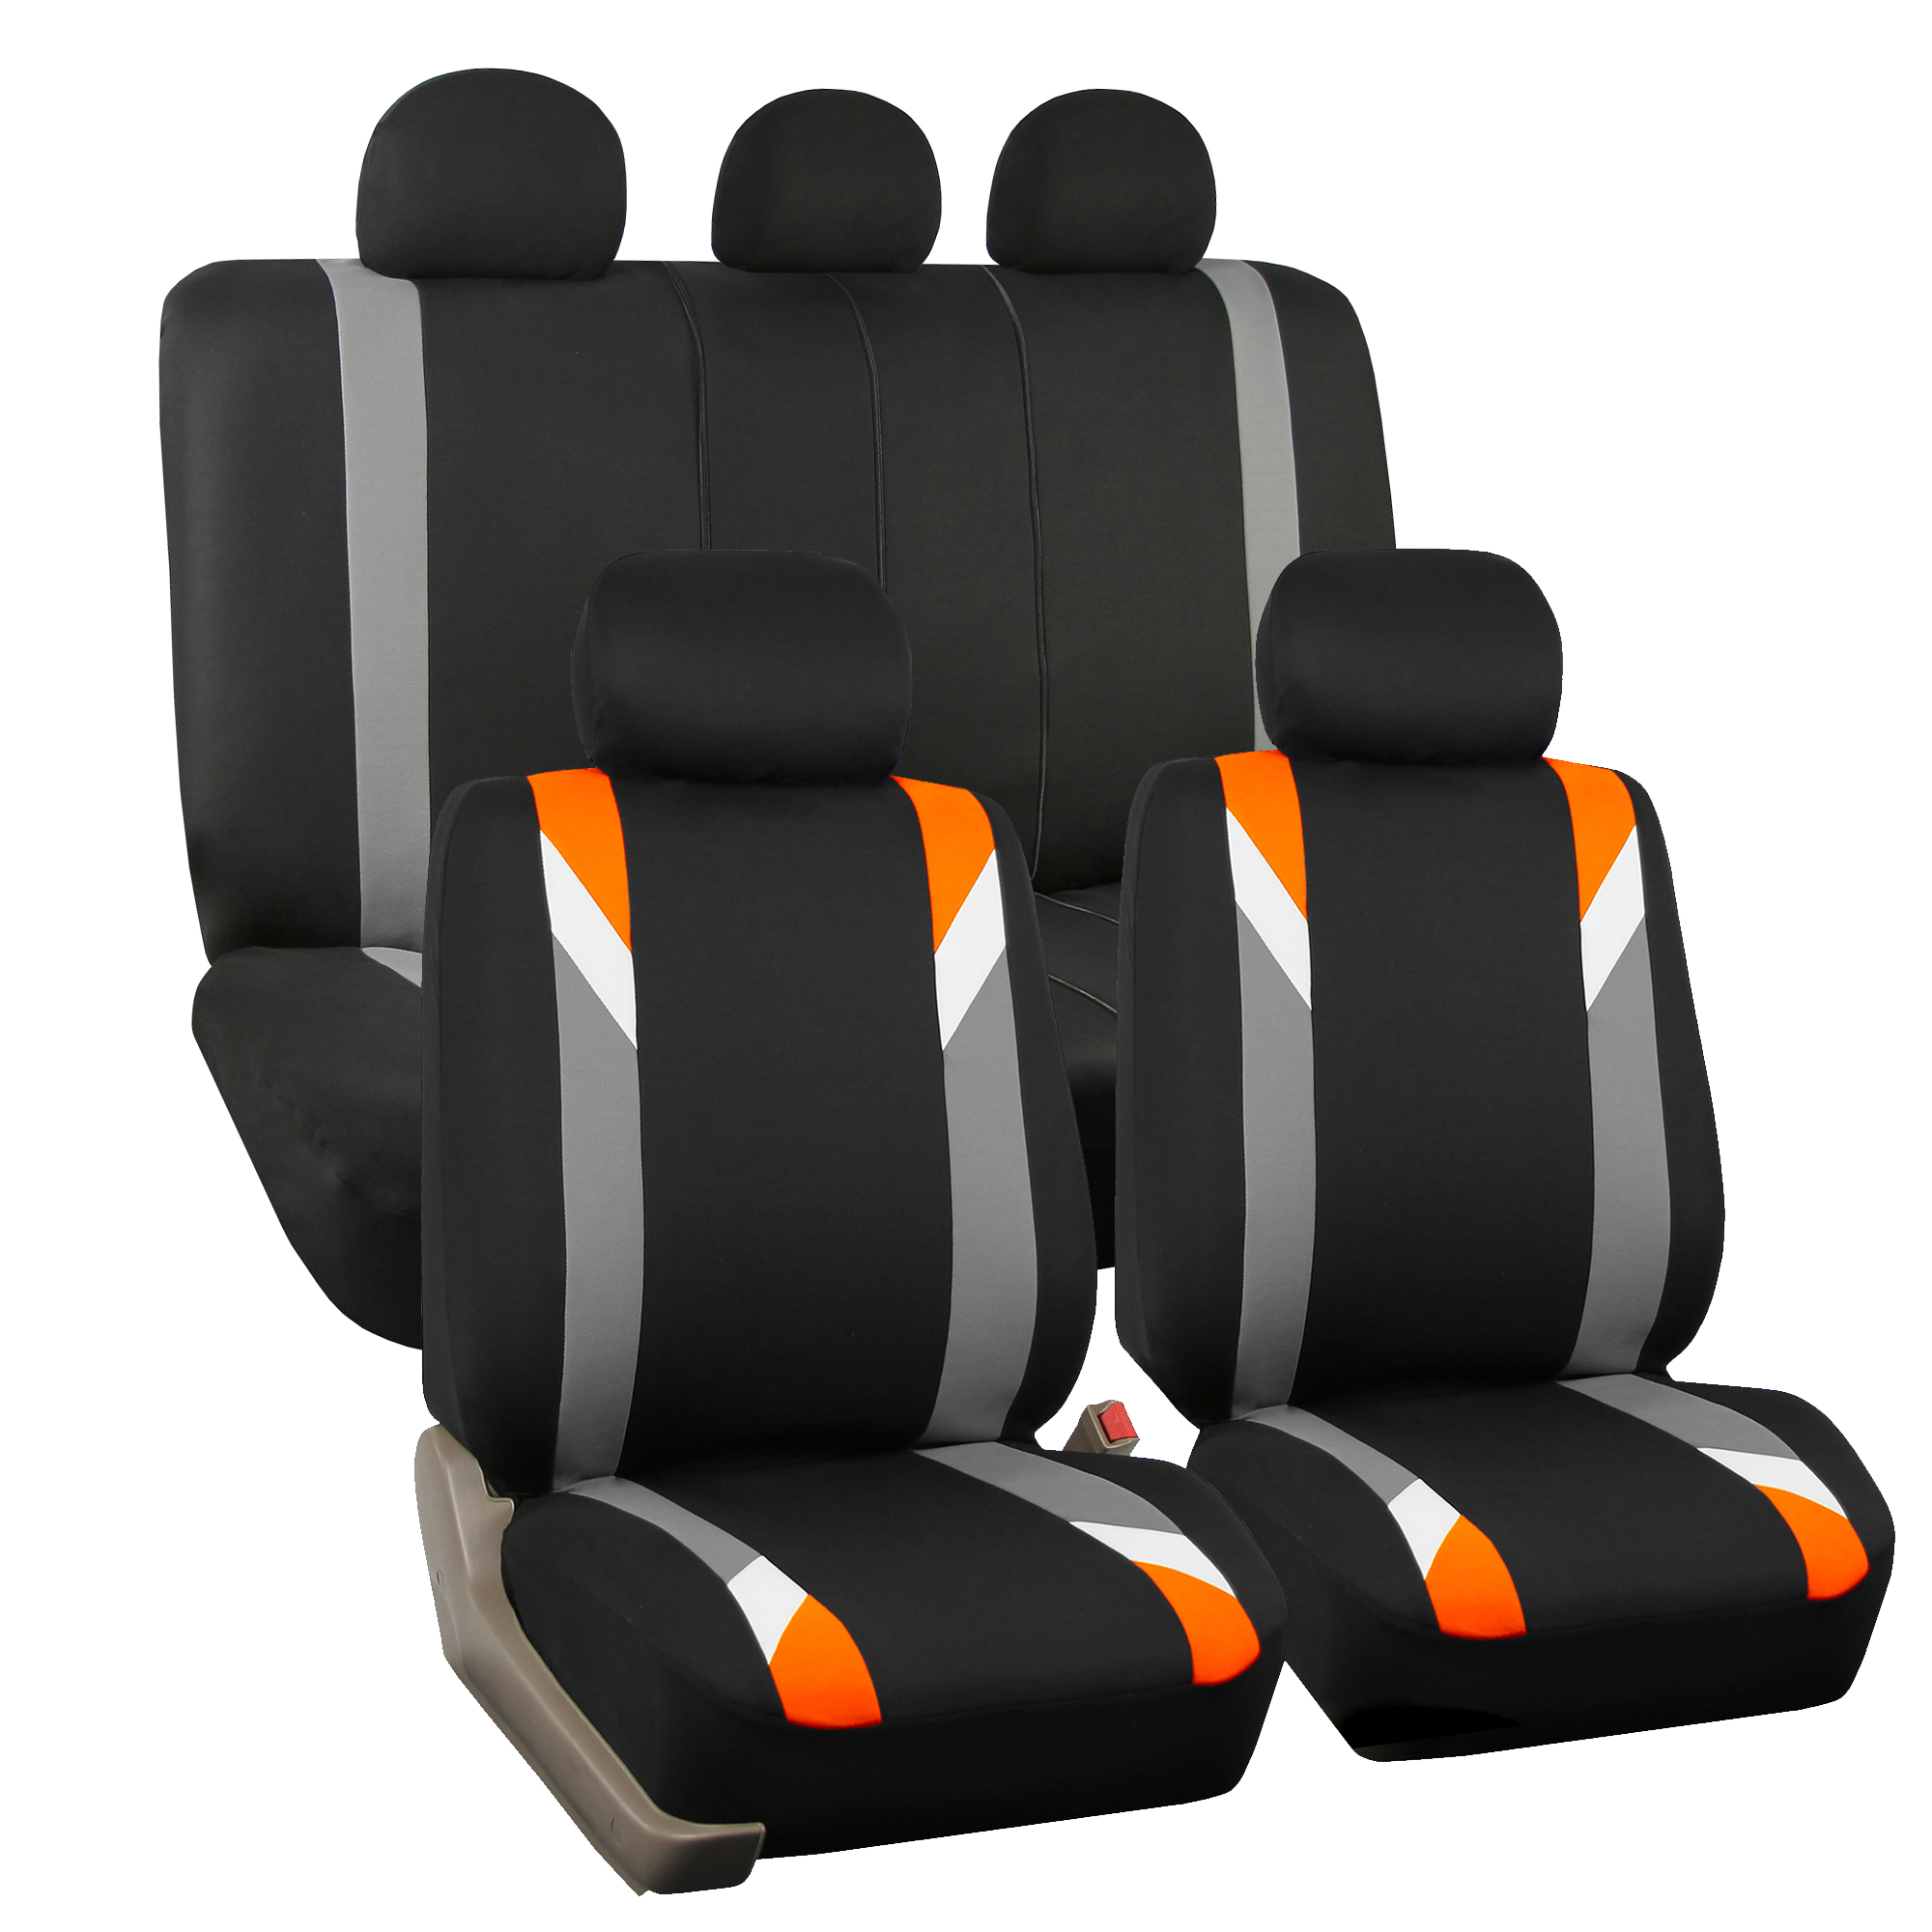 FH Group Airbag Compatible Modernistic Flat Cloth Full Set Seat Covers, Orange